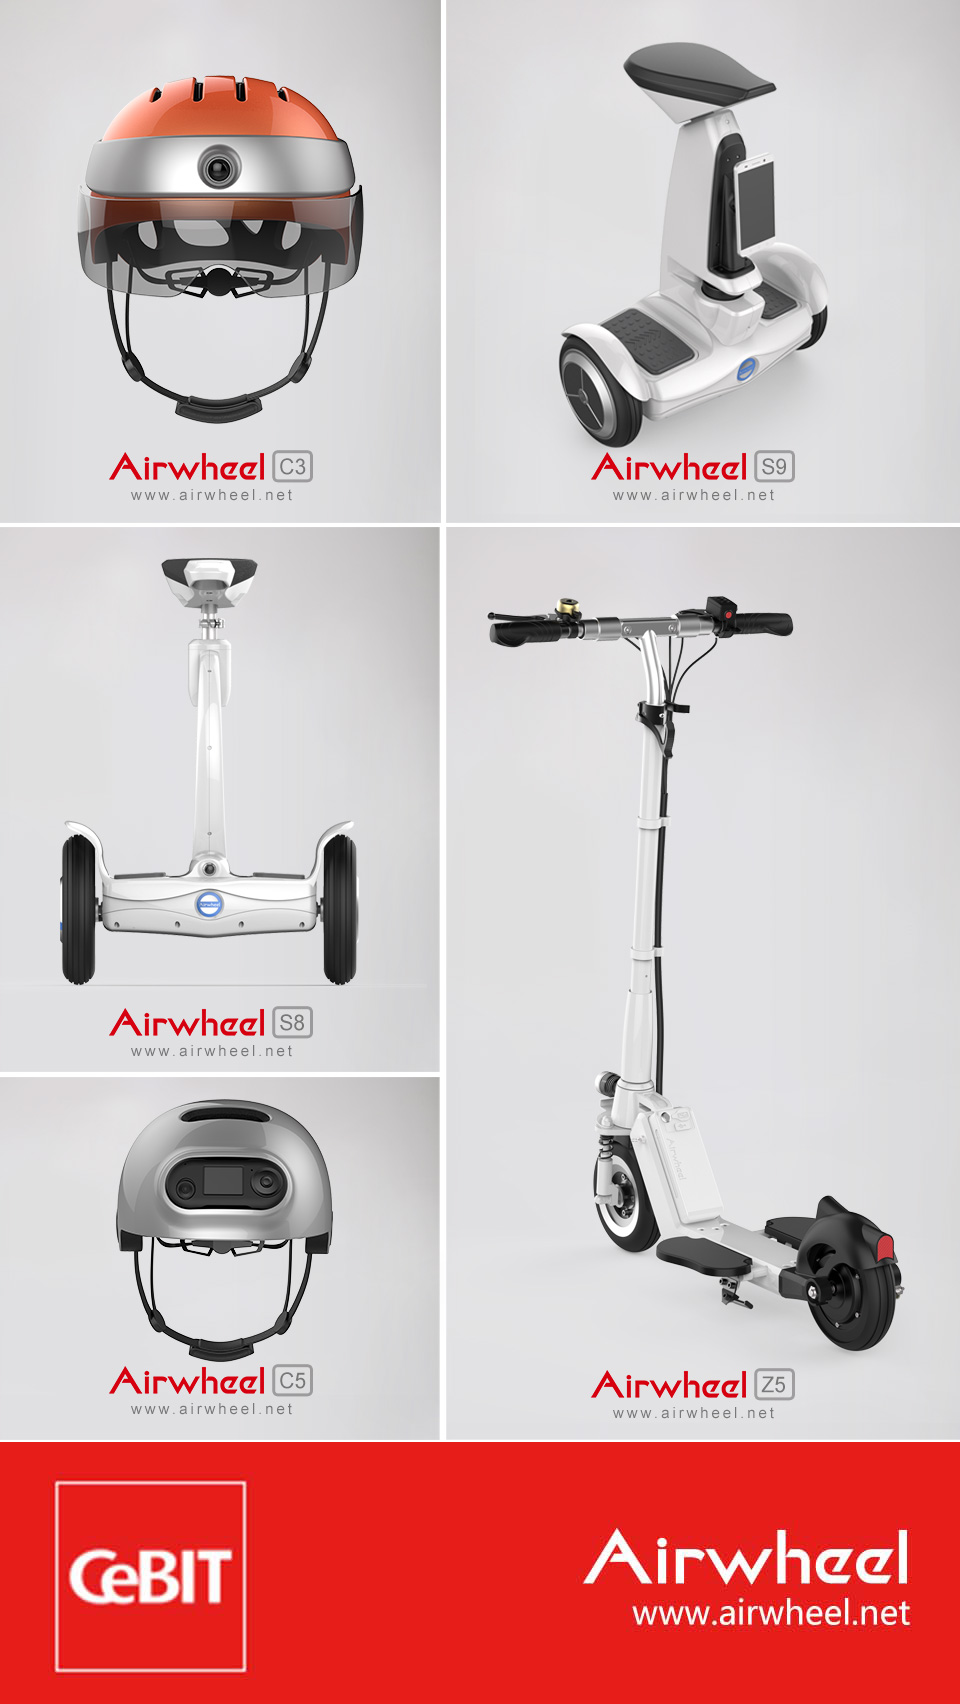 Airwheel intelligent electric scooter